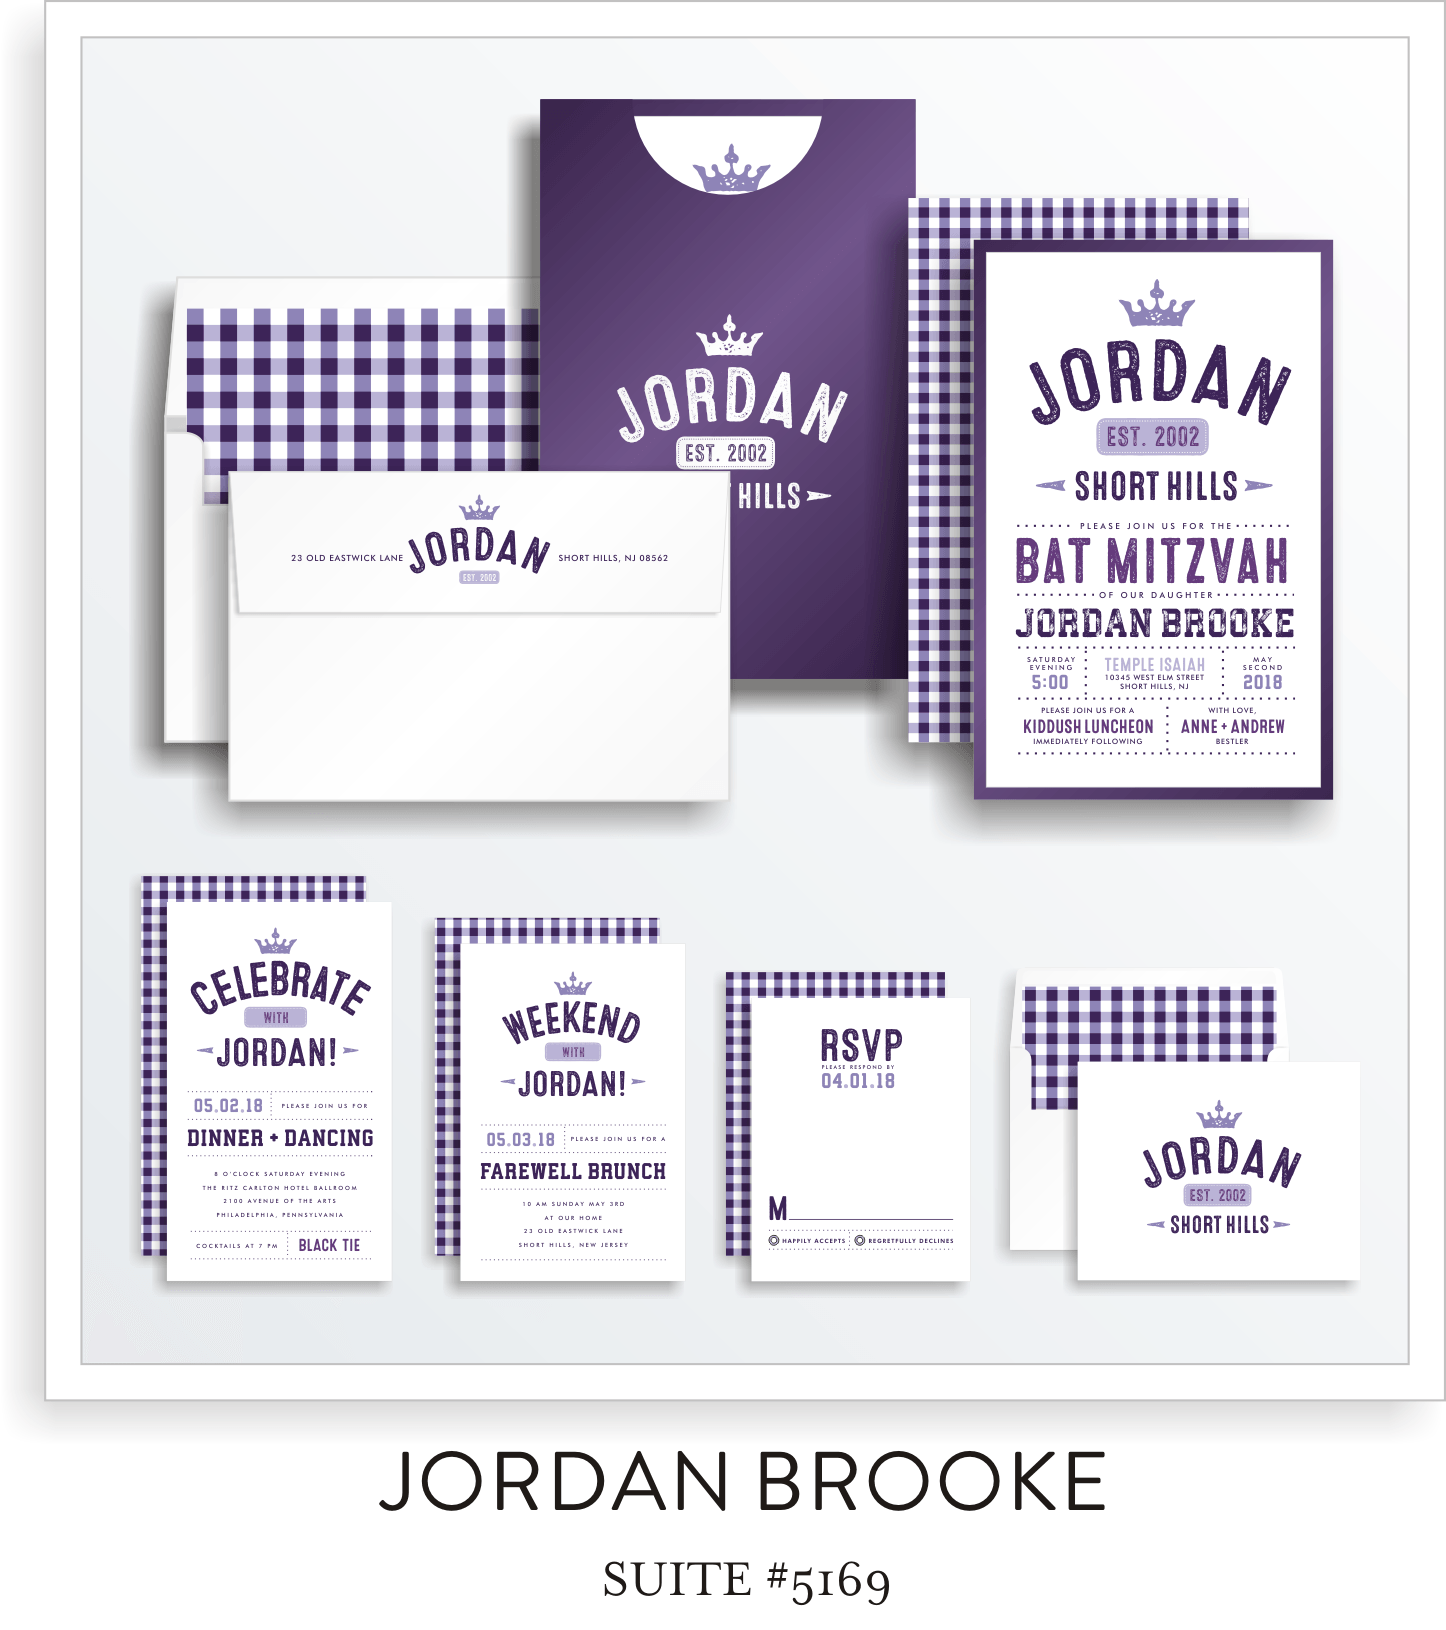 Bat Mitzvah Invitation Suite 5169 - Jordan Brooke